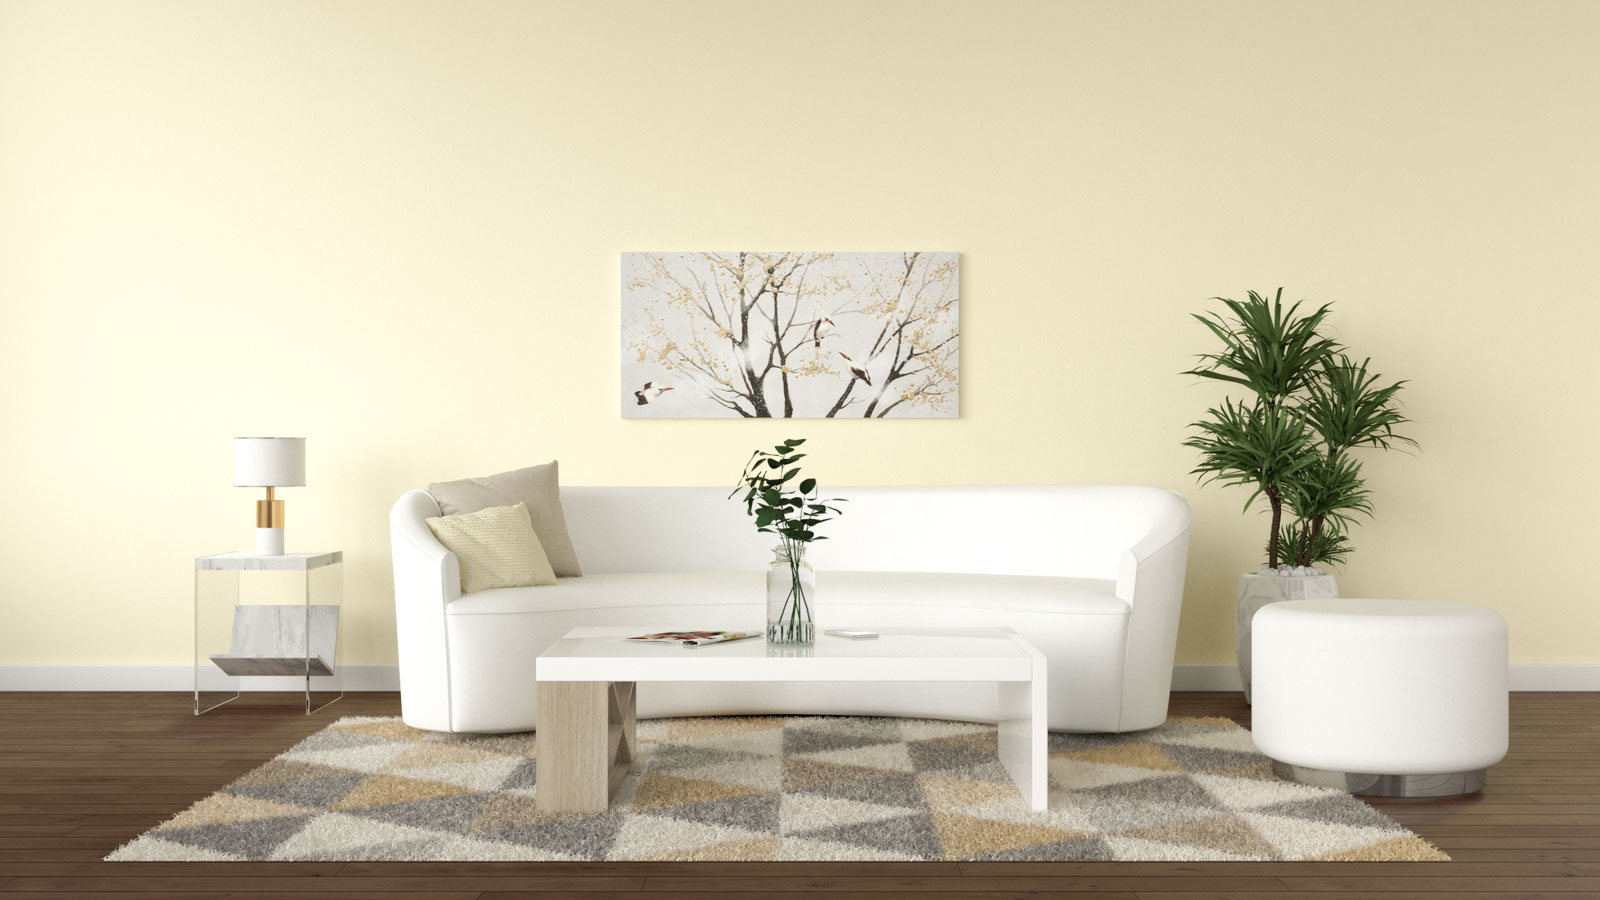 Yellow walls with white furniture